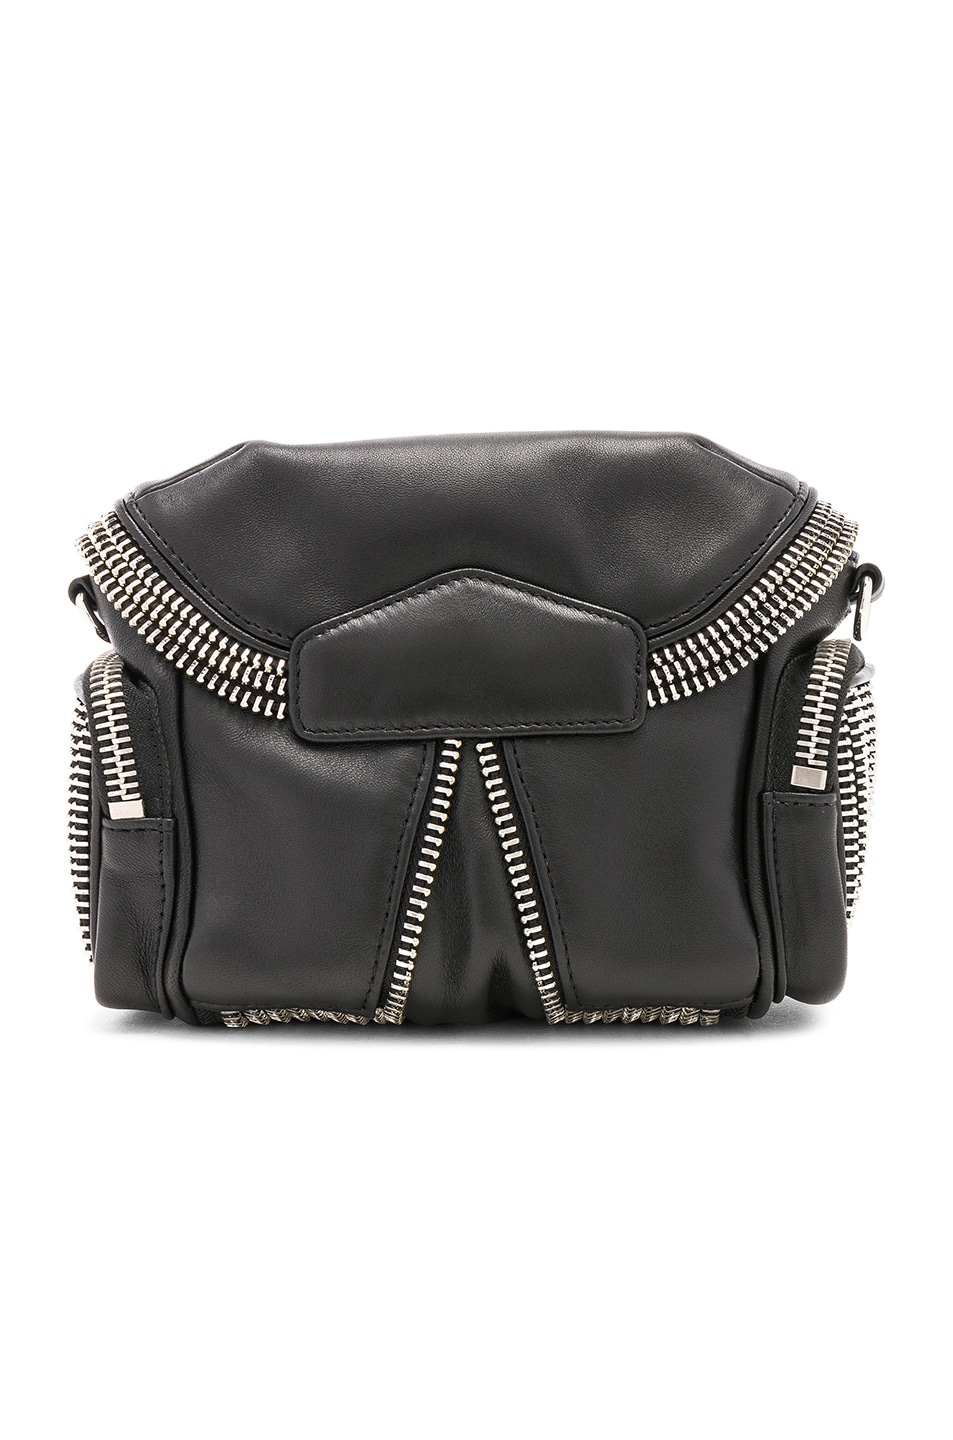 Image 3 of Alexander Wang Micro Marti Bag in Black